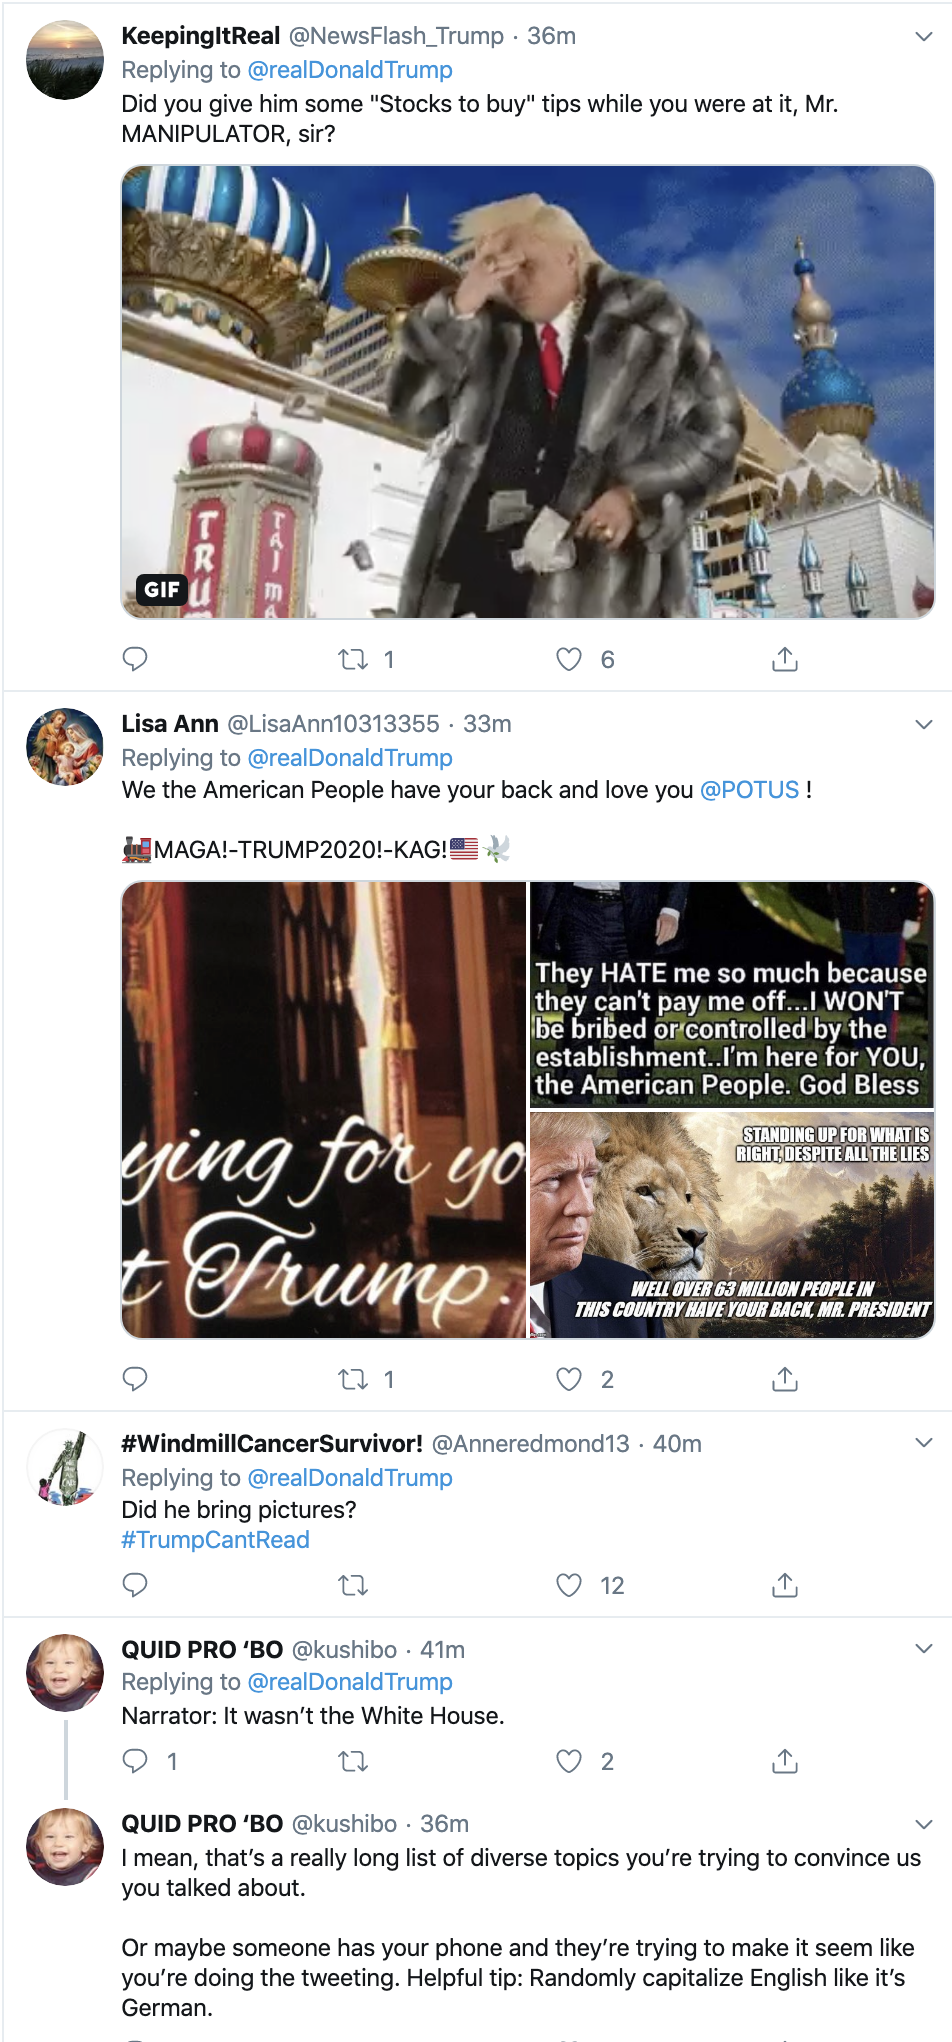 Screen-Shot-2019-11-18-at-10.44.13-AM Trump Delivers More Monday AM Distractions On Twitter Conspiracy Theory Corruption Crime Donald Trump Economy Election 2016 Election 2020 Featured Foreign Policy History Impeachment Investigation Military National Security Politics Terrorism Top Stories War